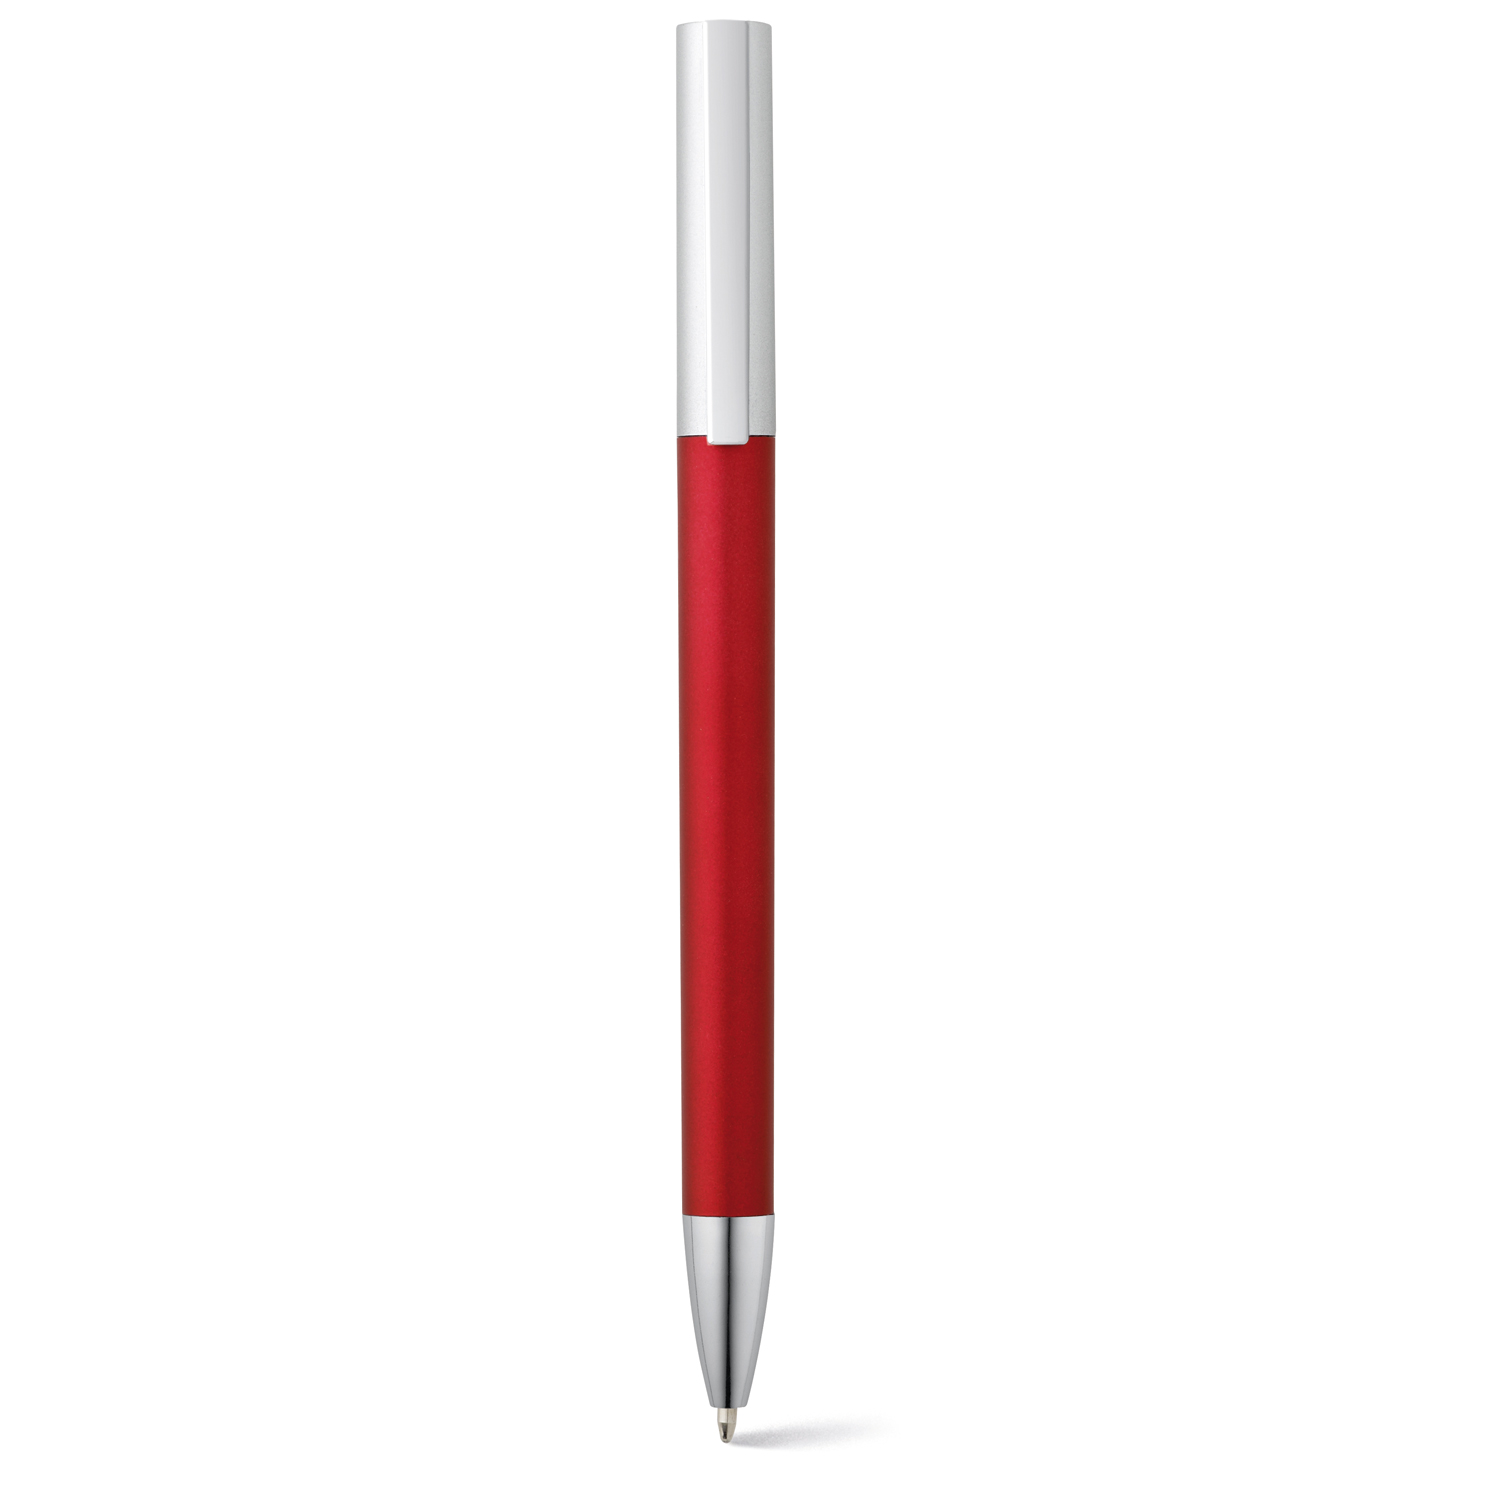 Pen 138 (Plastic pen with metal finishing) - hmi20138-04 (Red)